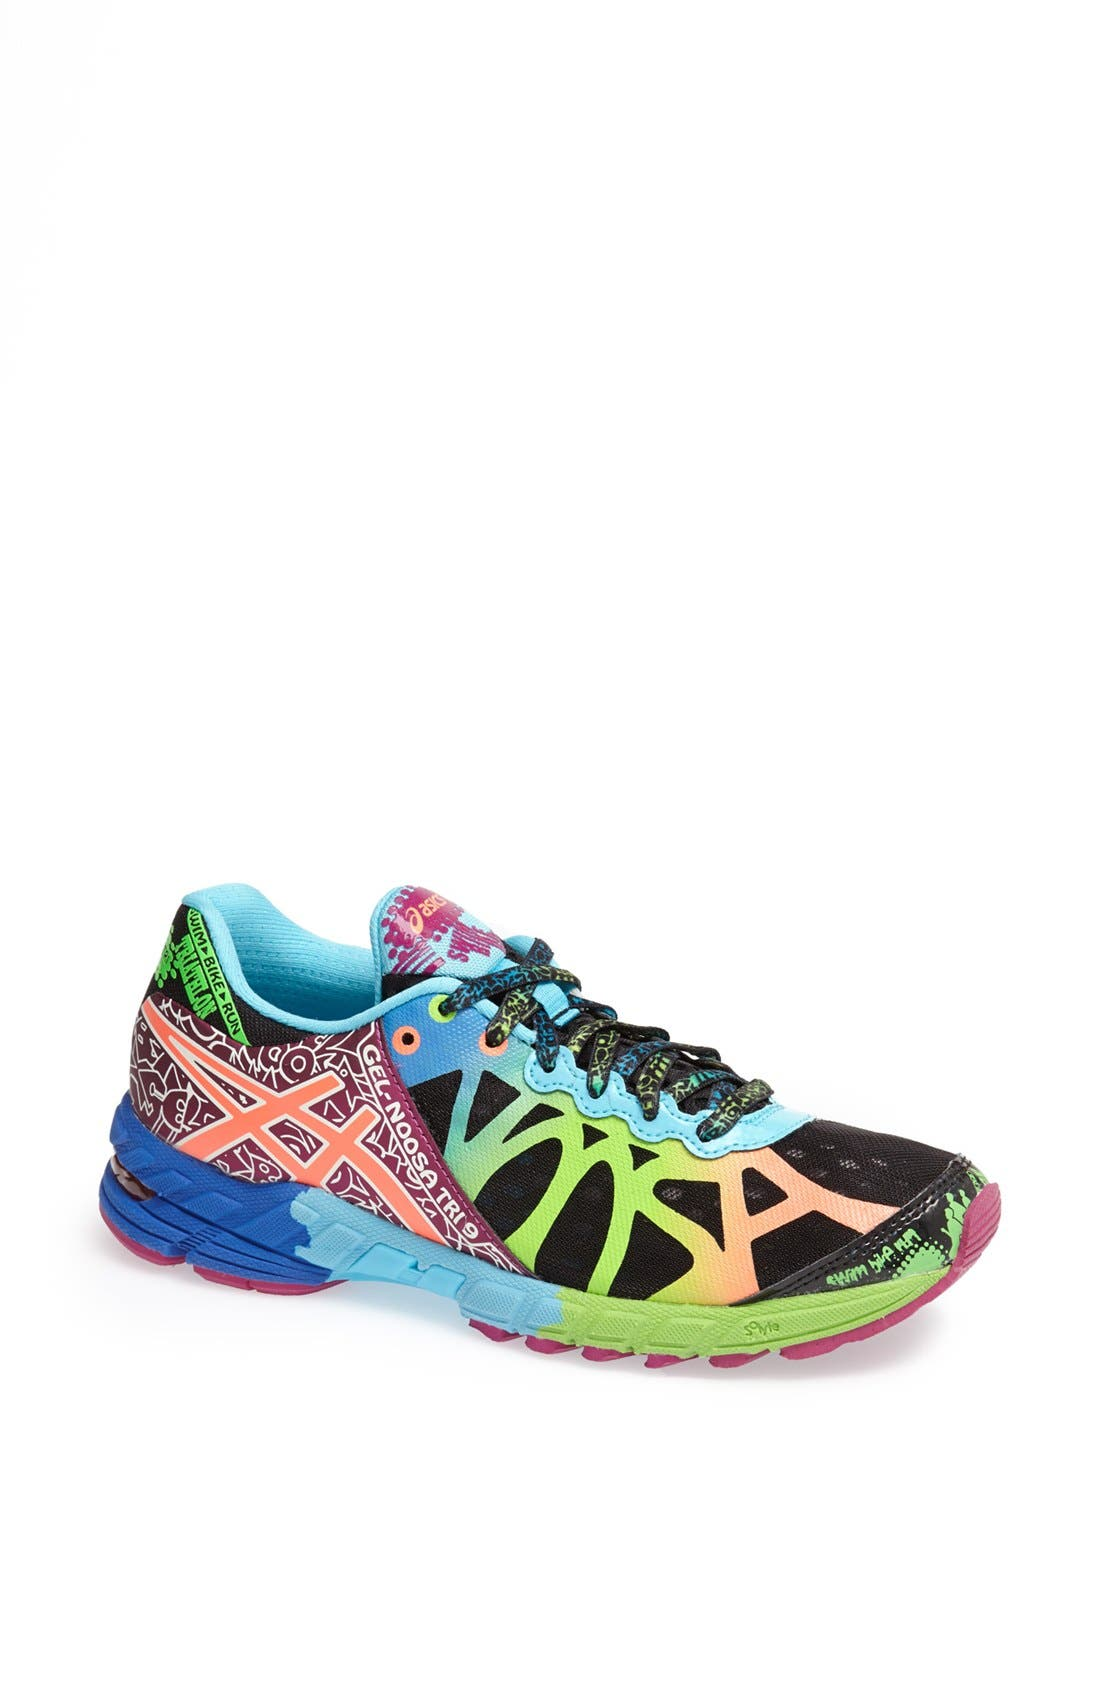 Alternate Image 1 Selected - ASICS® 'GEL Noosa Tri 9' Tri Running Shoe (Women)